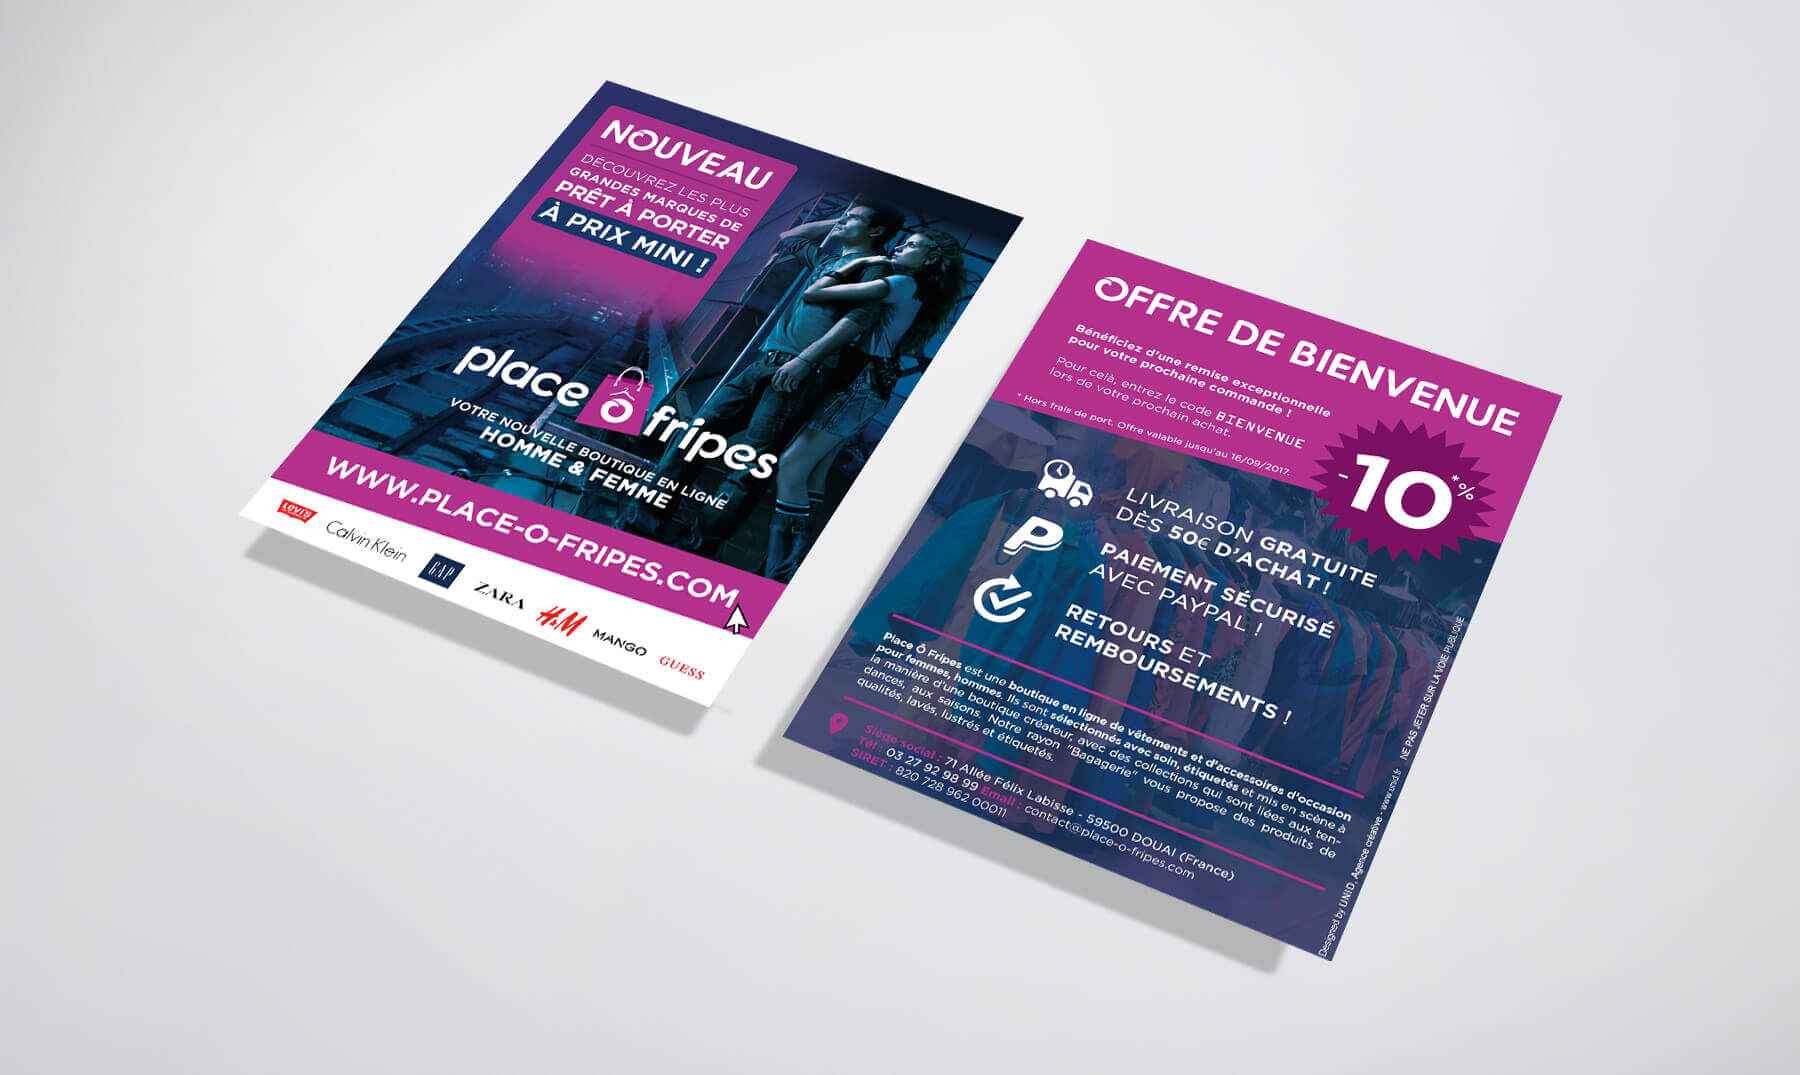 placeofripes-flyer